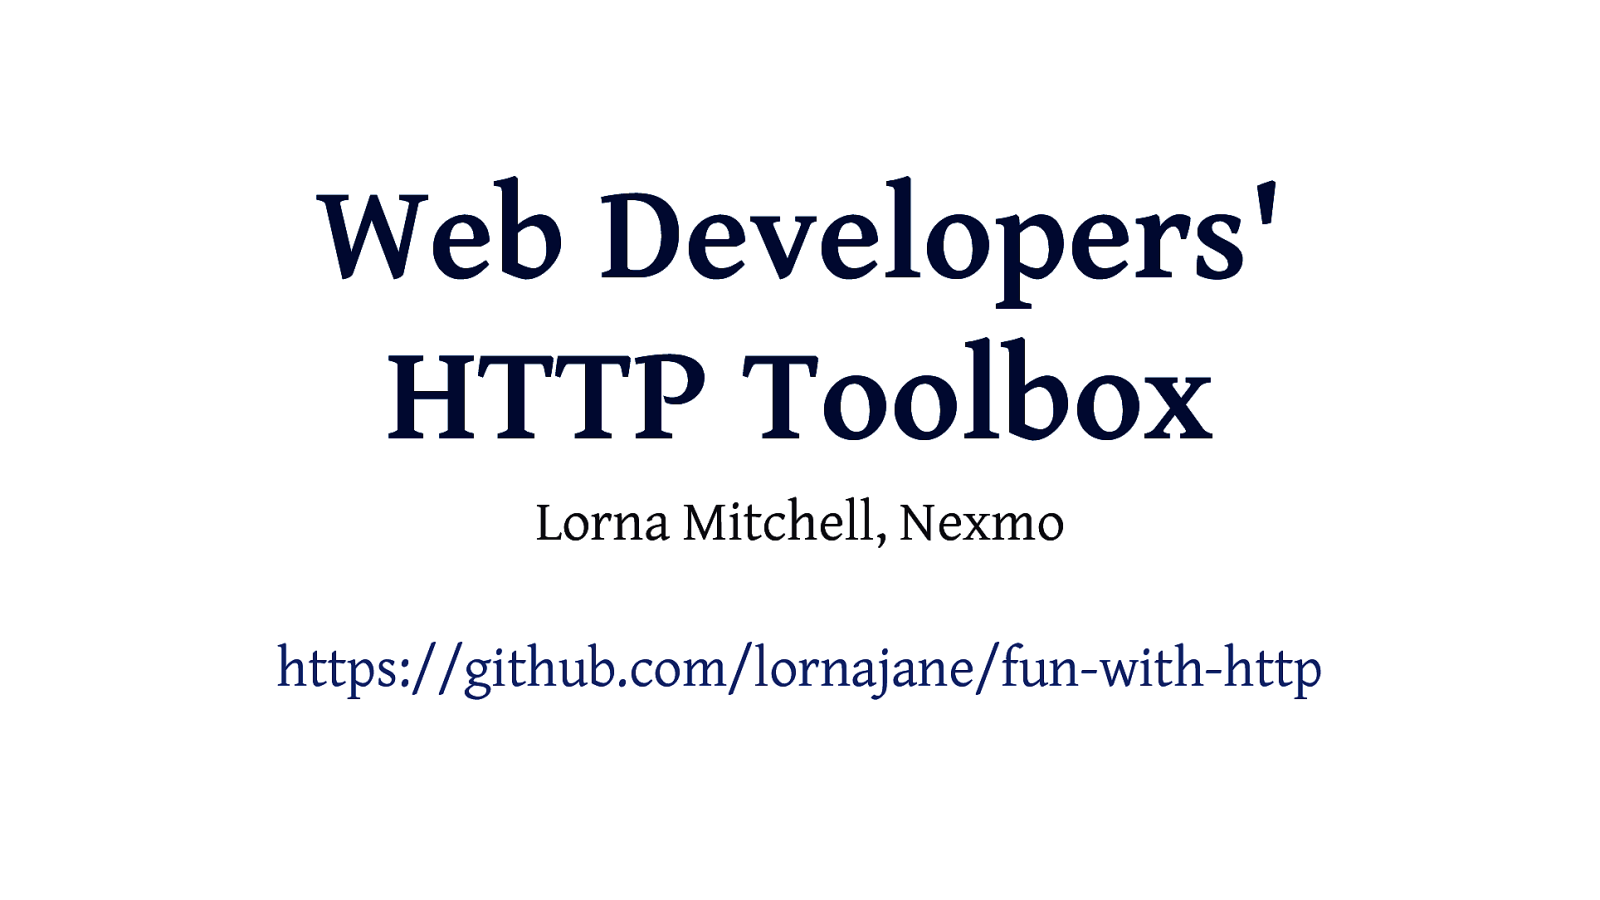 Web Developer's HTTP Toolbox